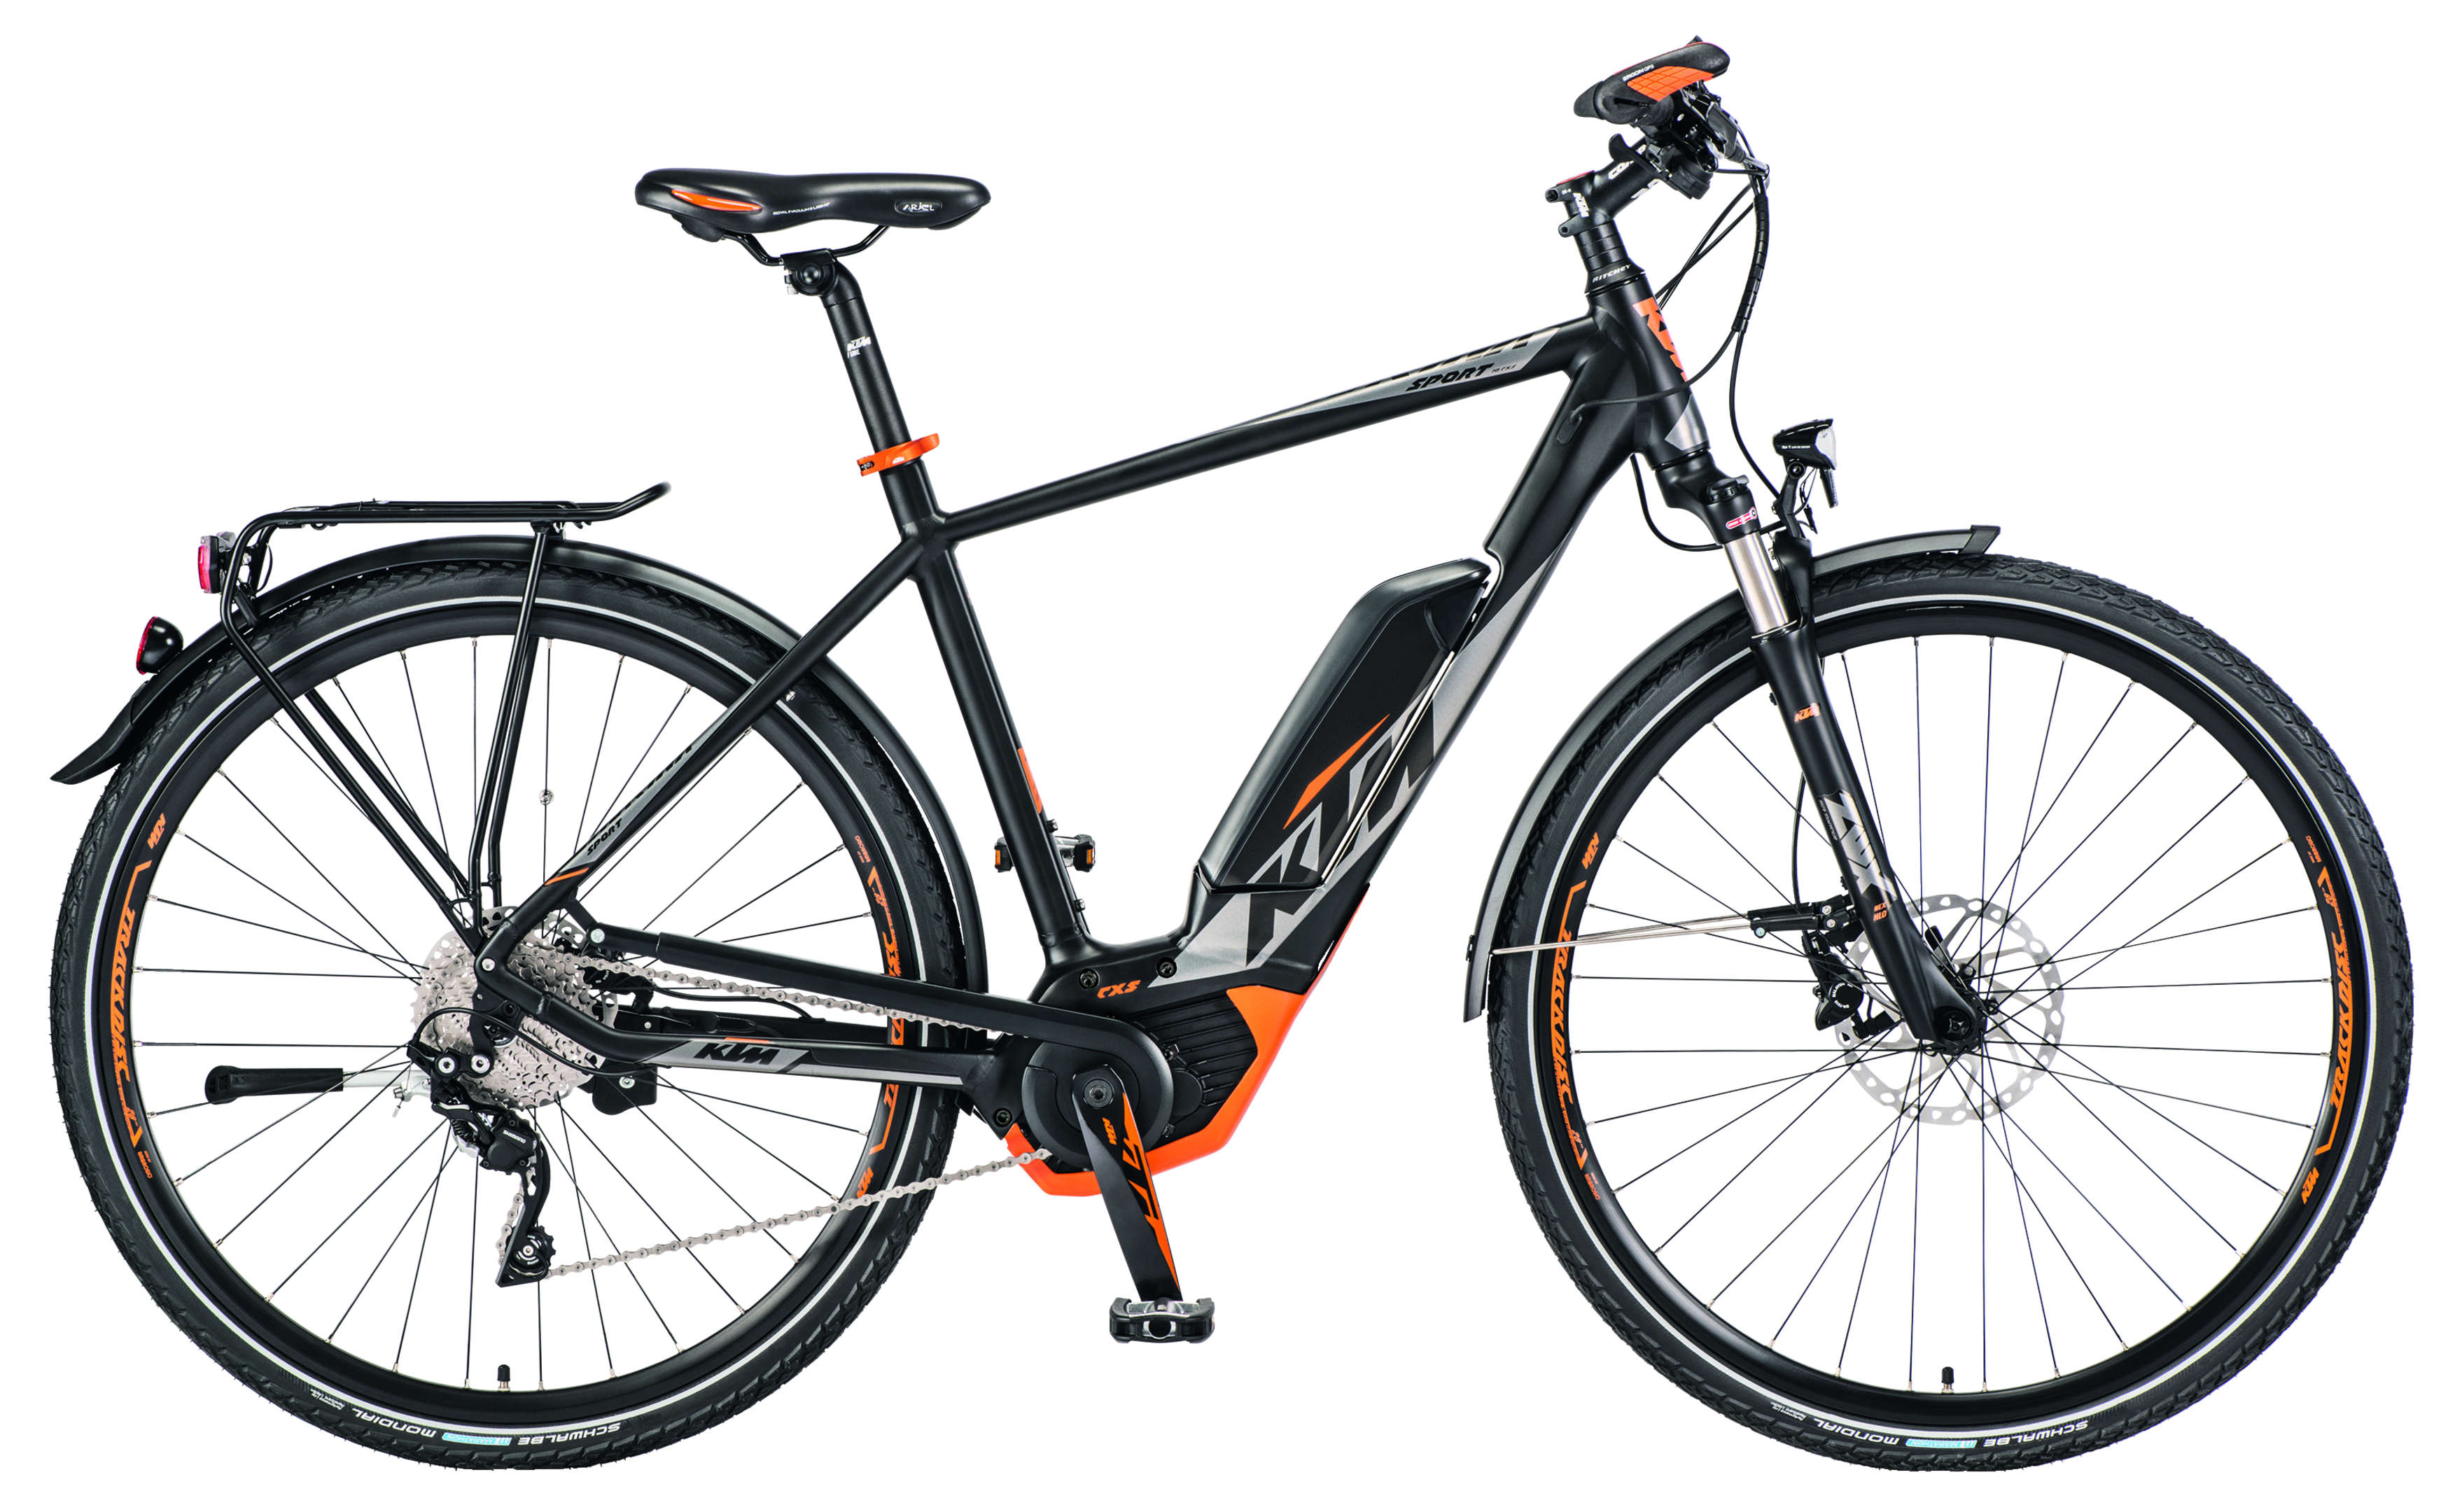 ktm e bike macina sport 10 cx5 eurorad. Black Bedroom Furniture Sets. Home Design Ideas